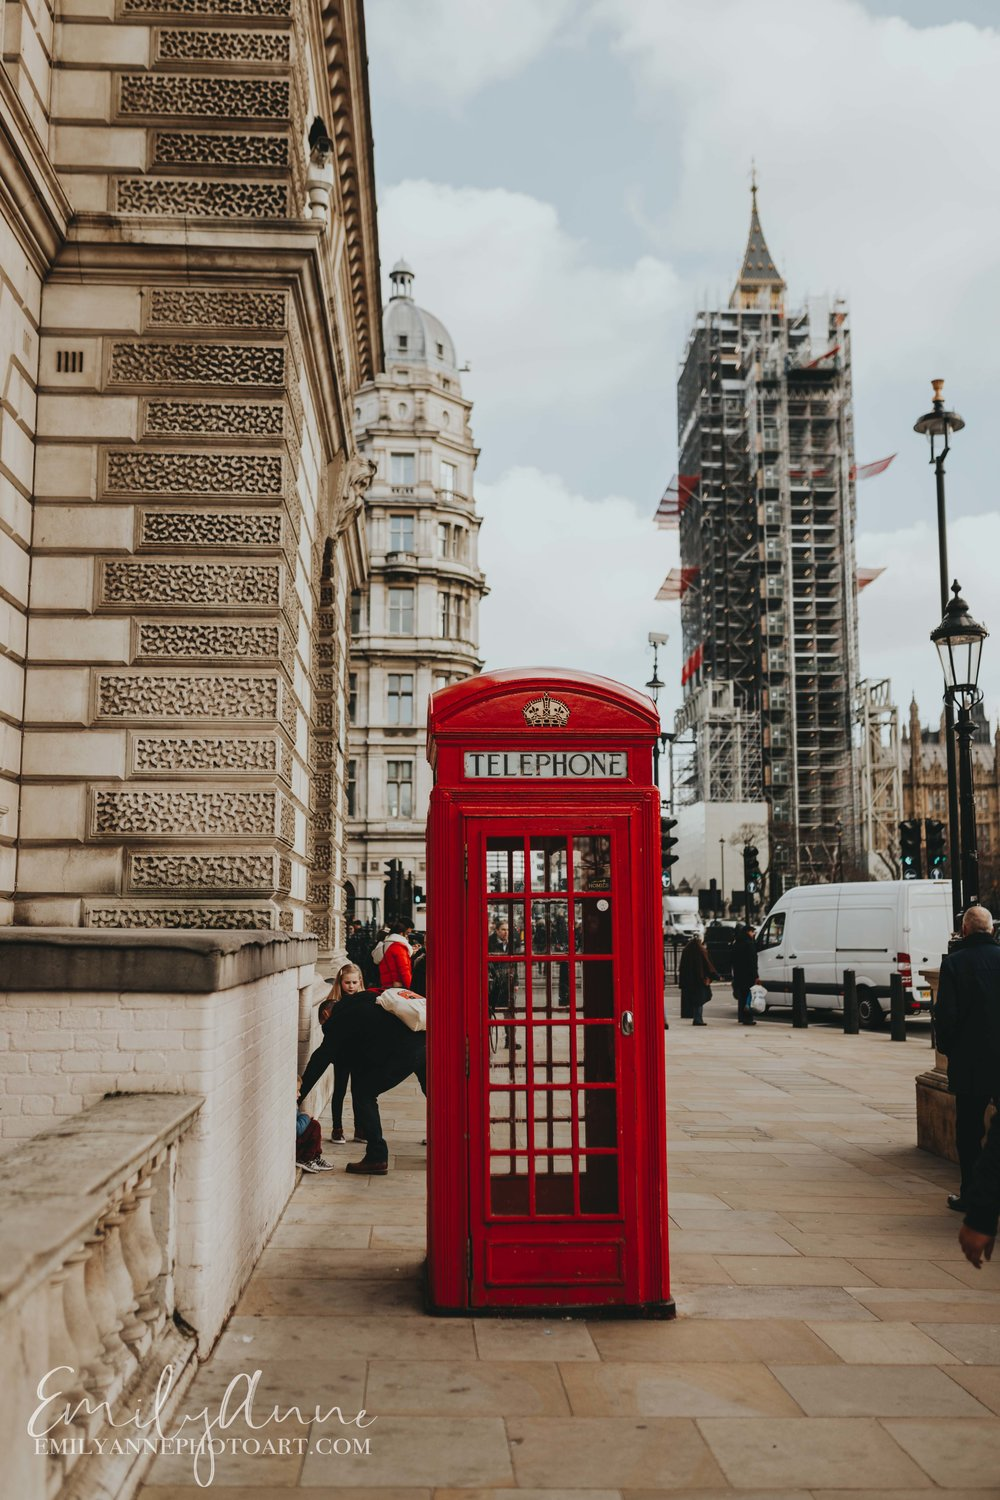 engagement photography ideas in London UK classic red telephone booth pics in London Uk - things you must do Emily Anne Photo Art!